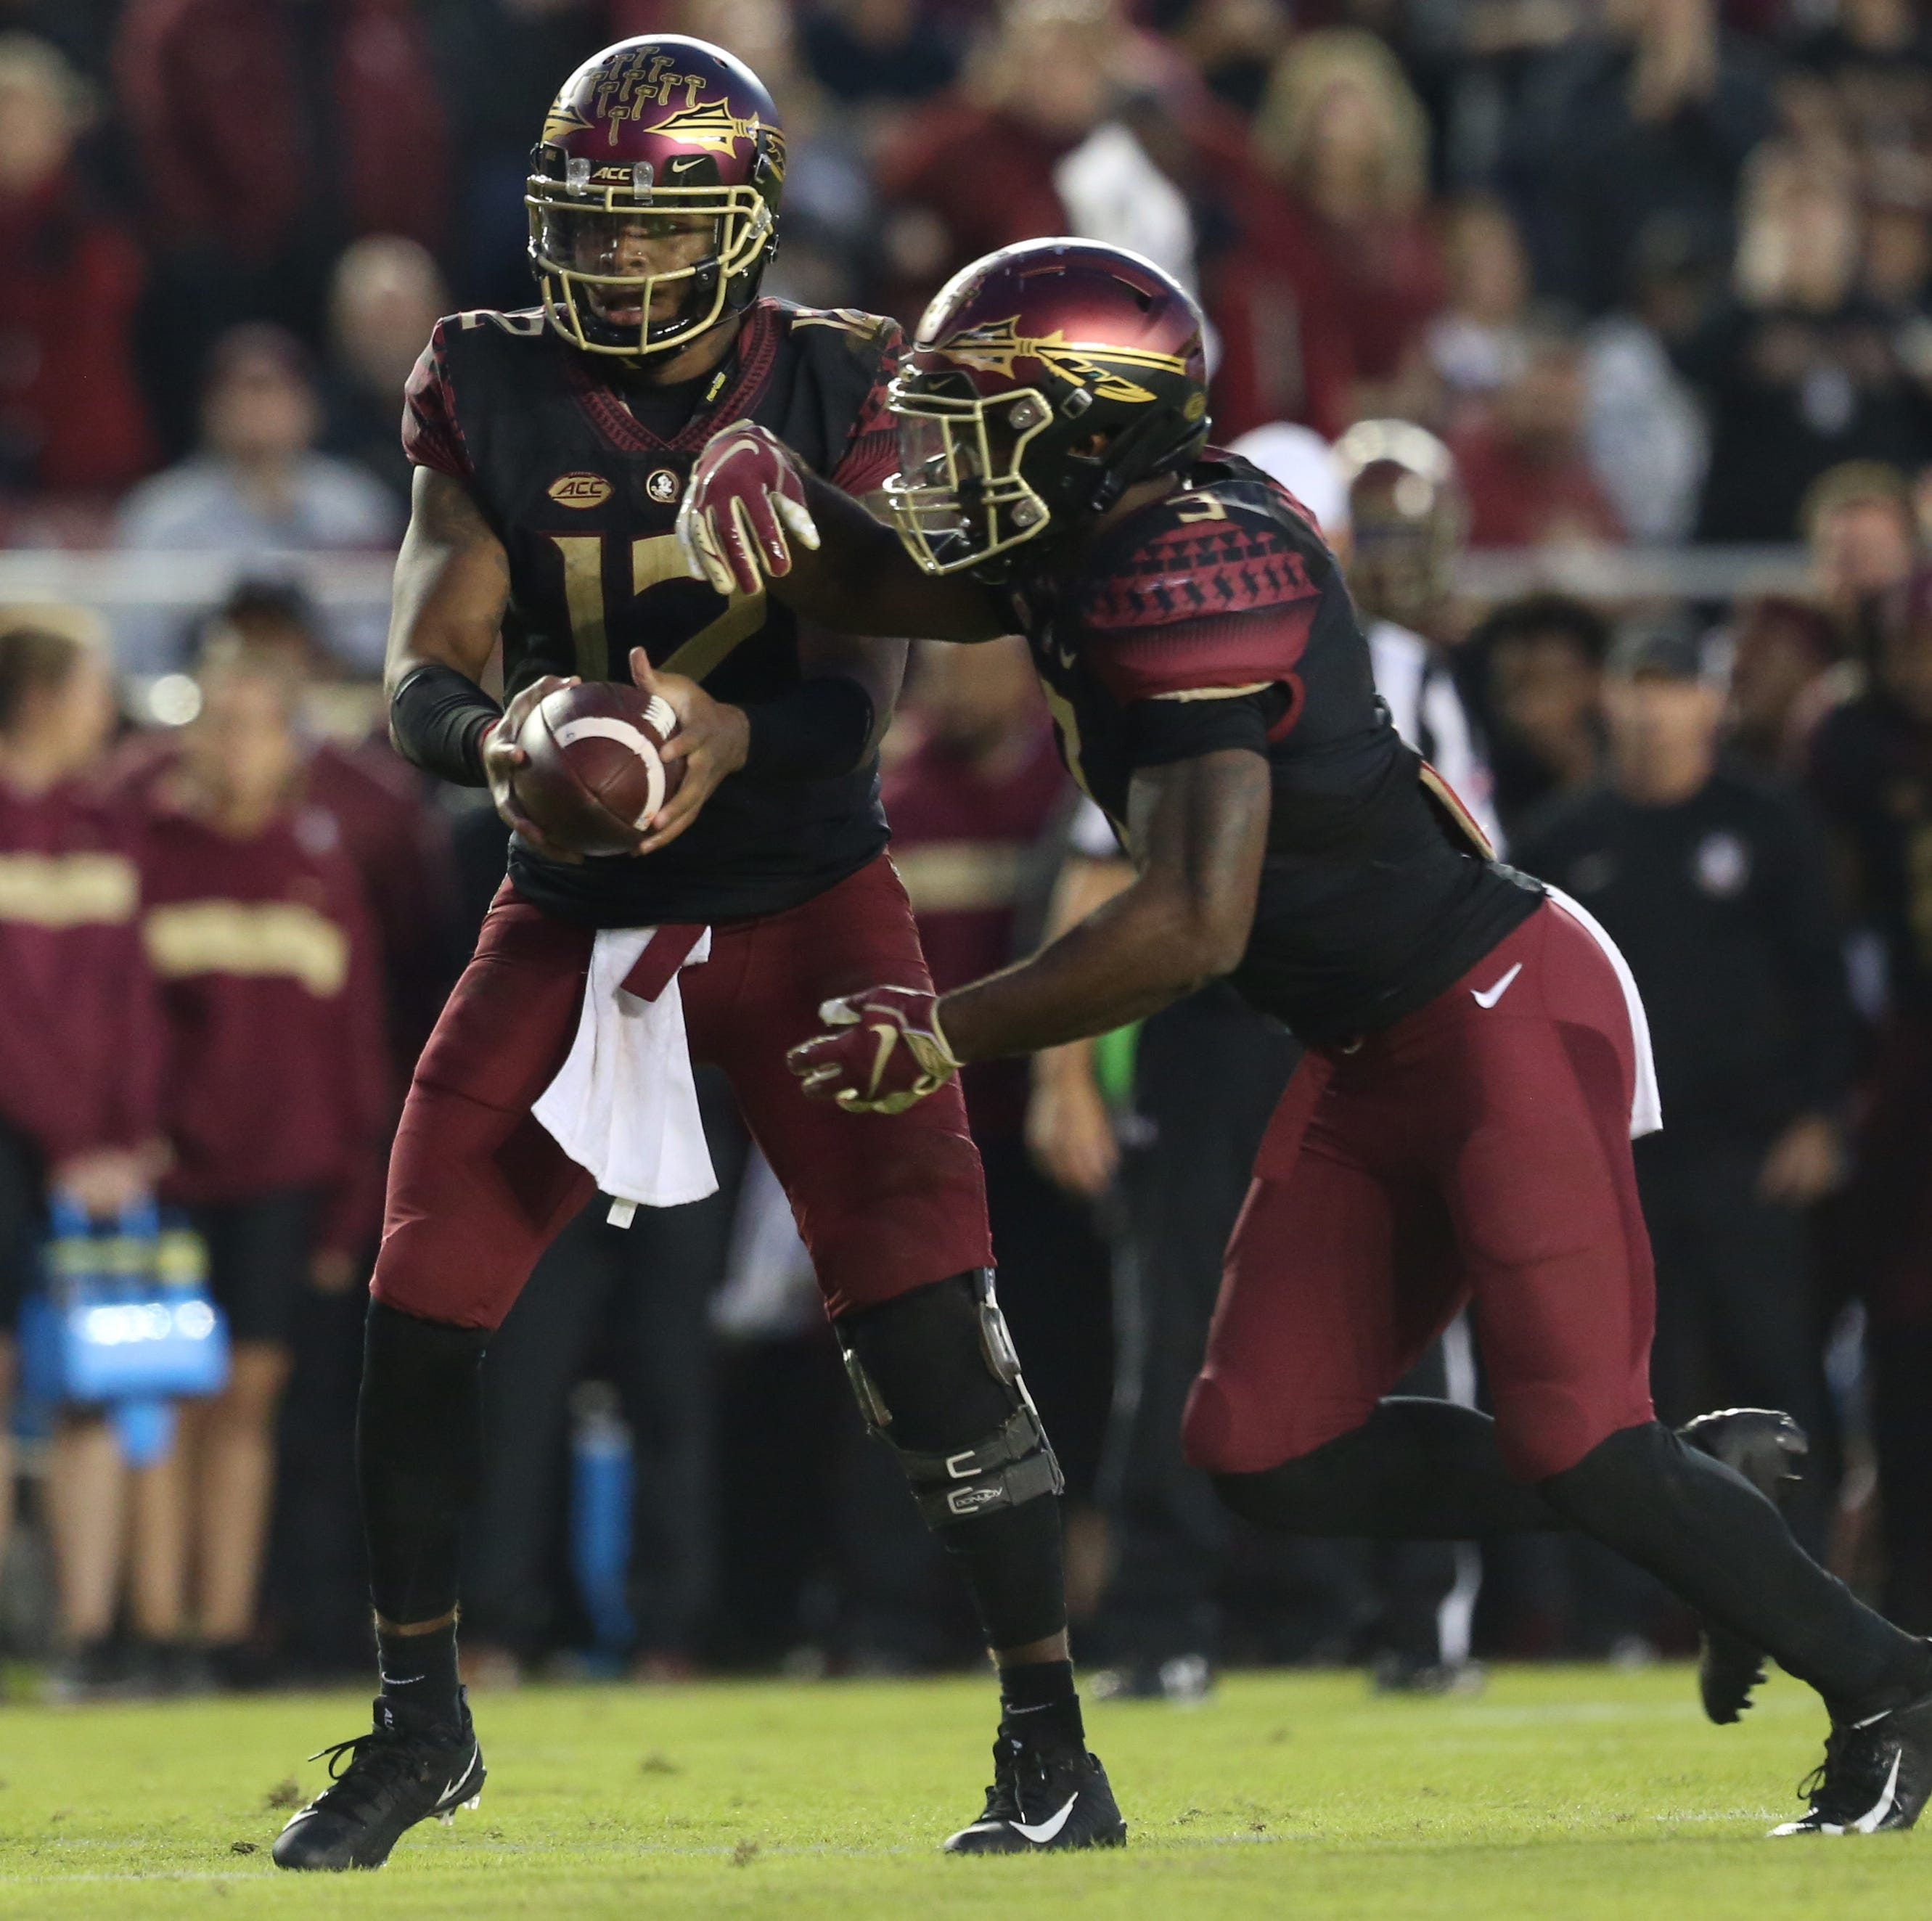 Florida State focusing on itself in prep for all-important UF game